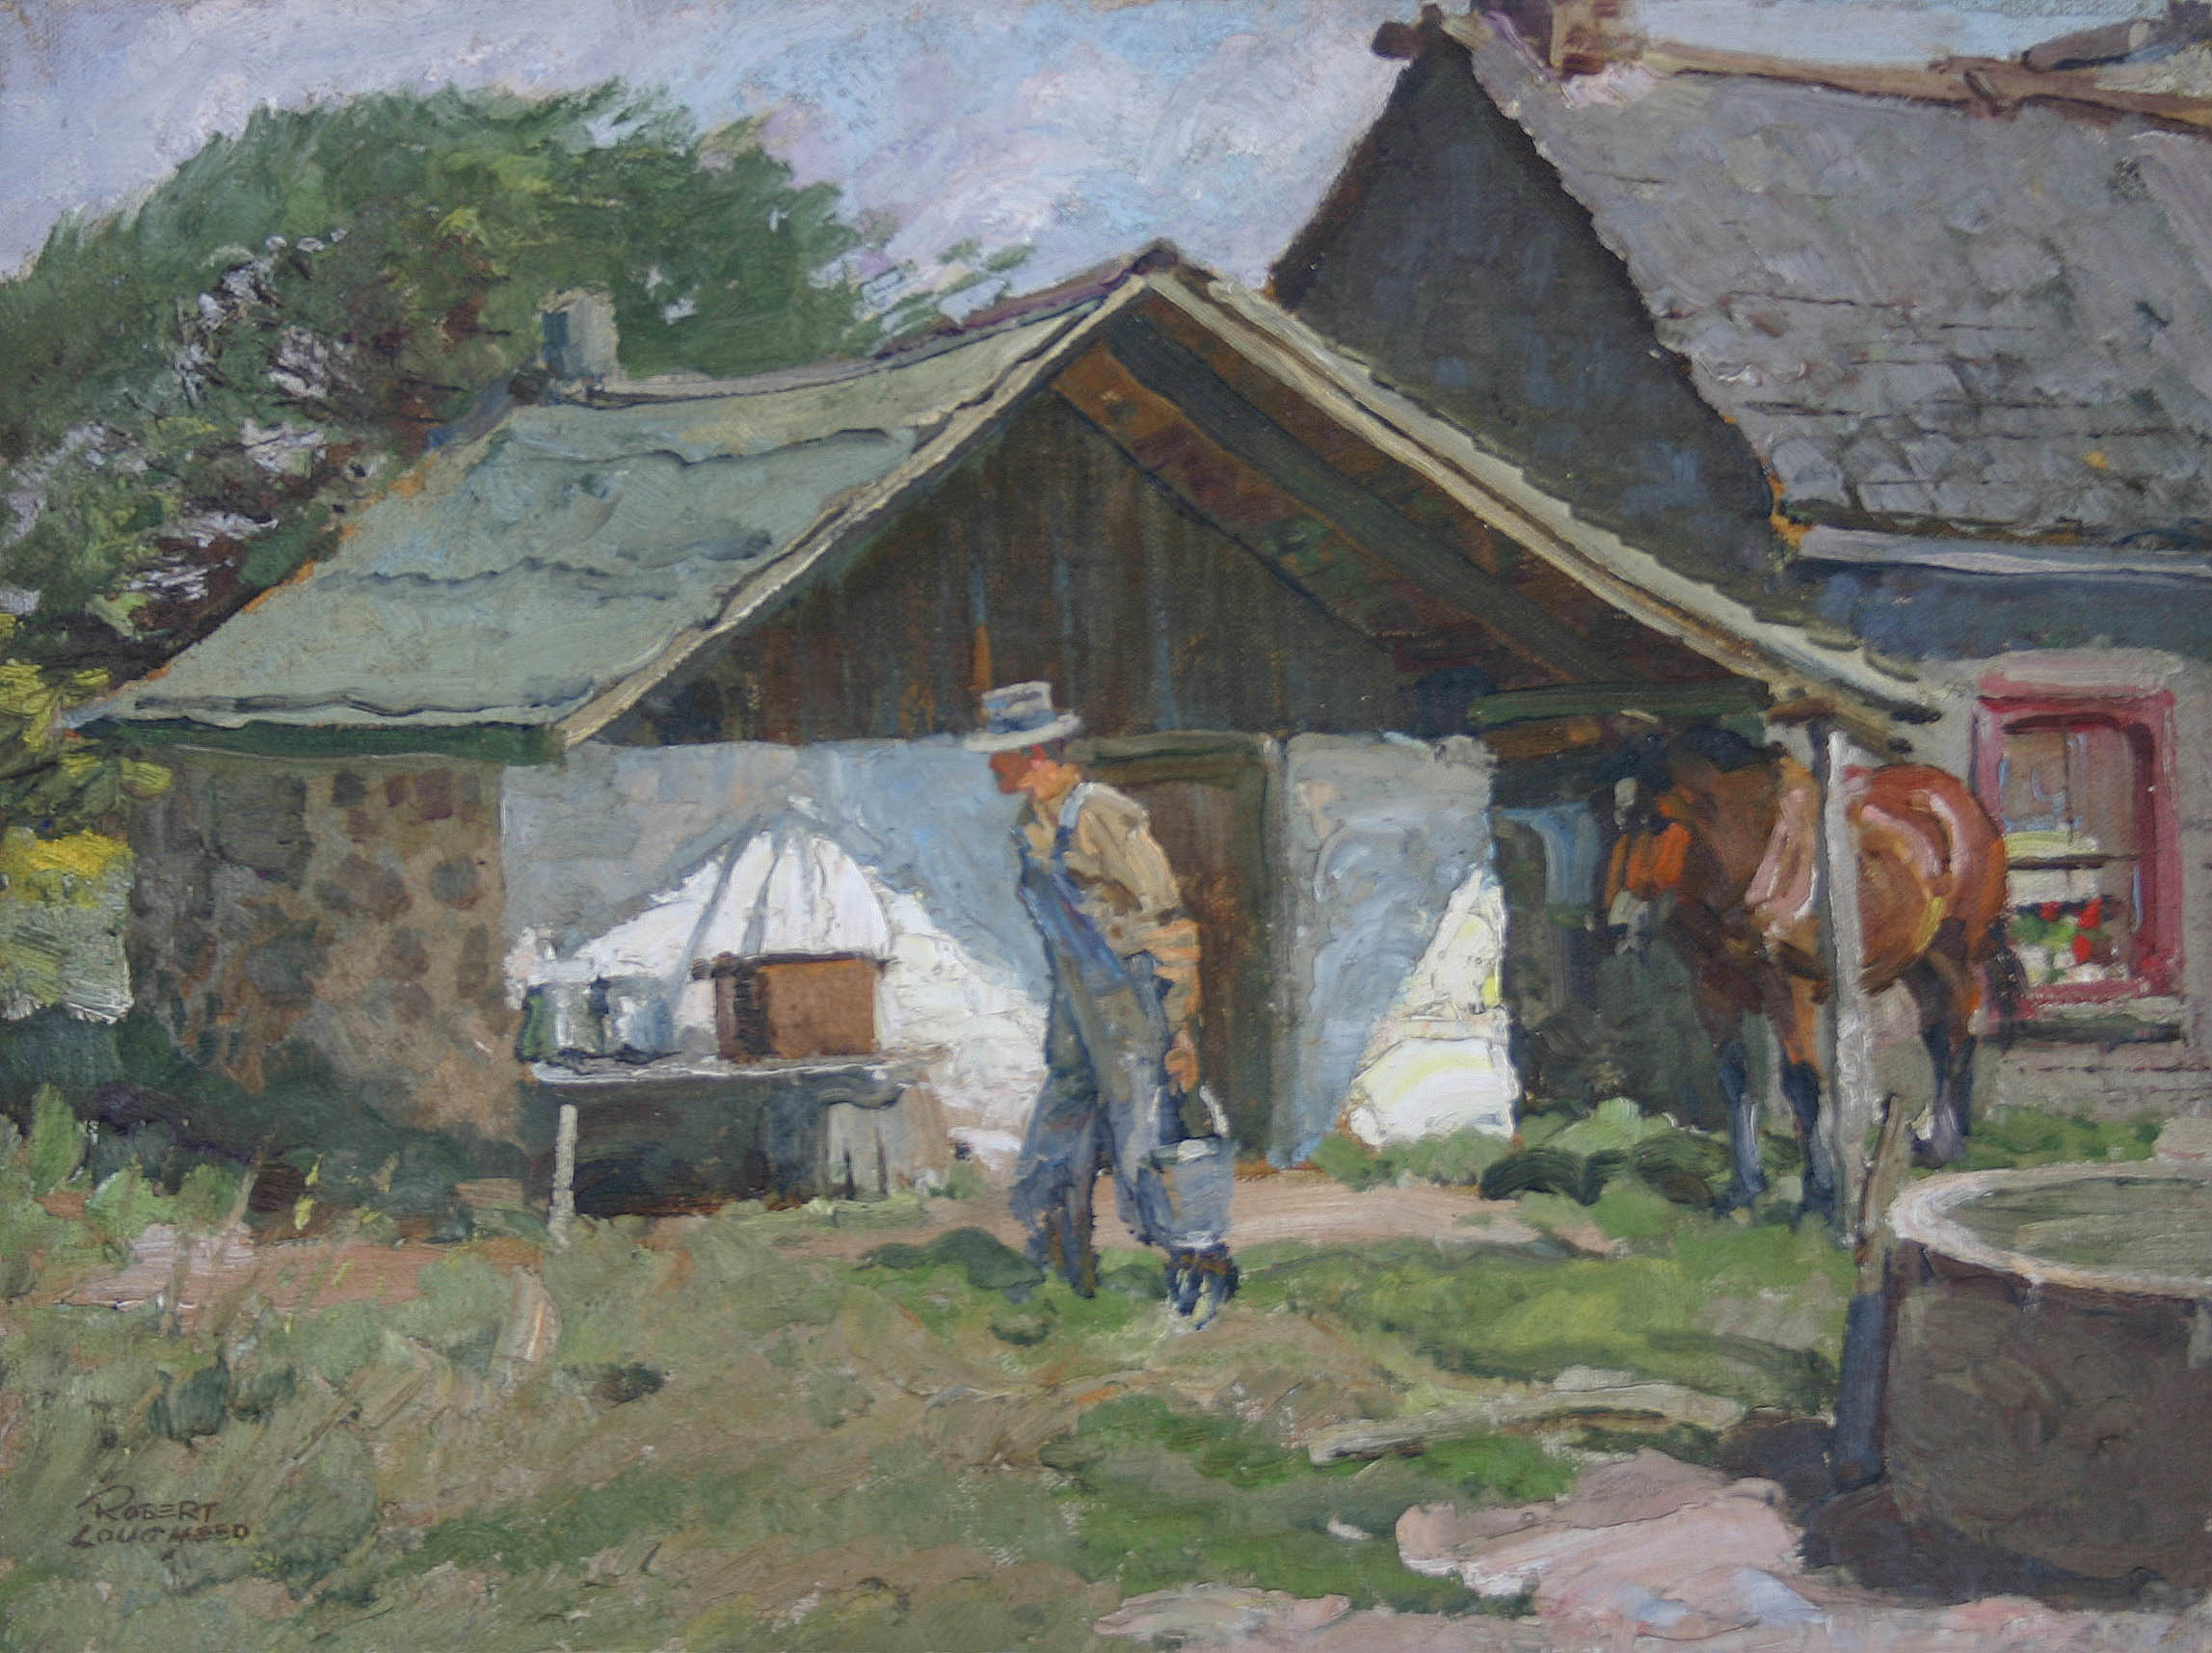 On the Riley Farm by  Robert Lougheed - Masterpiece Online